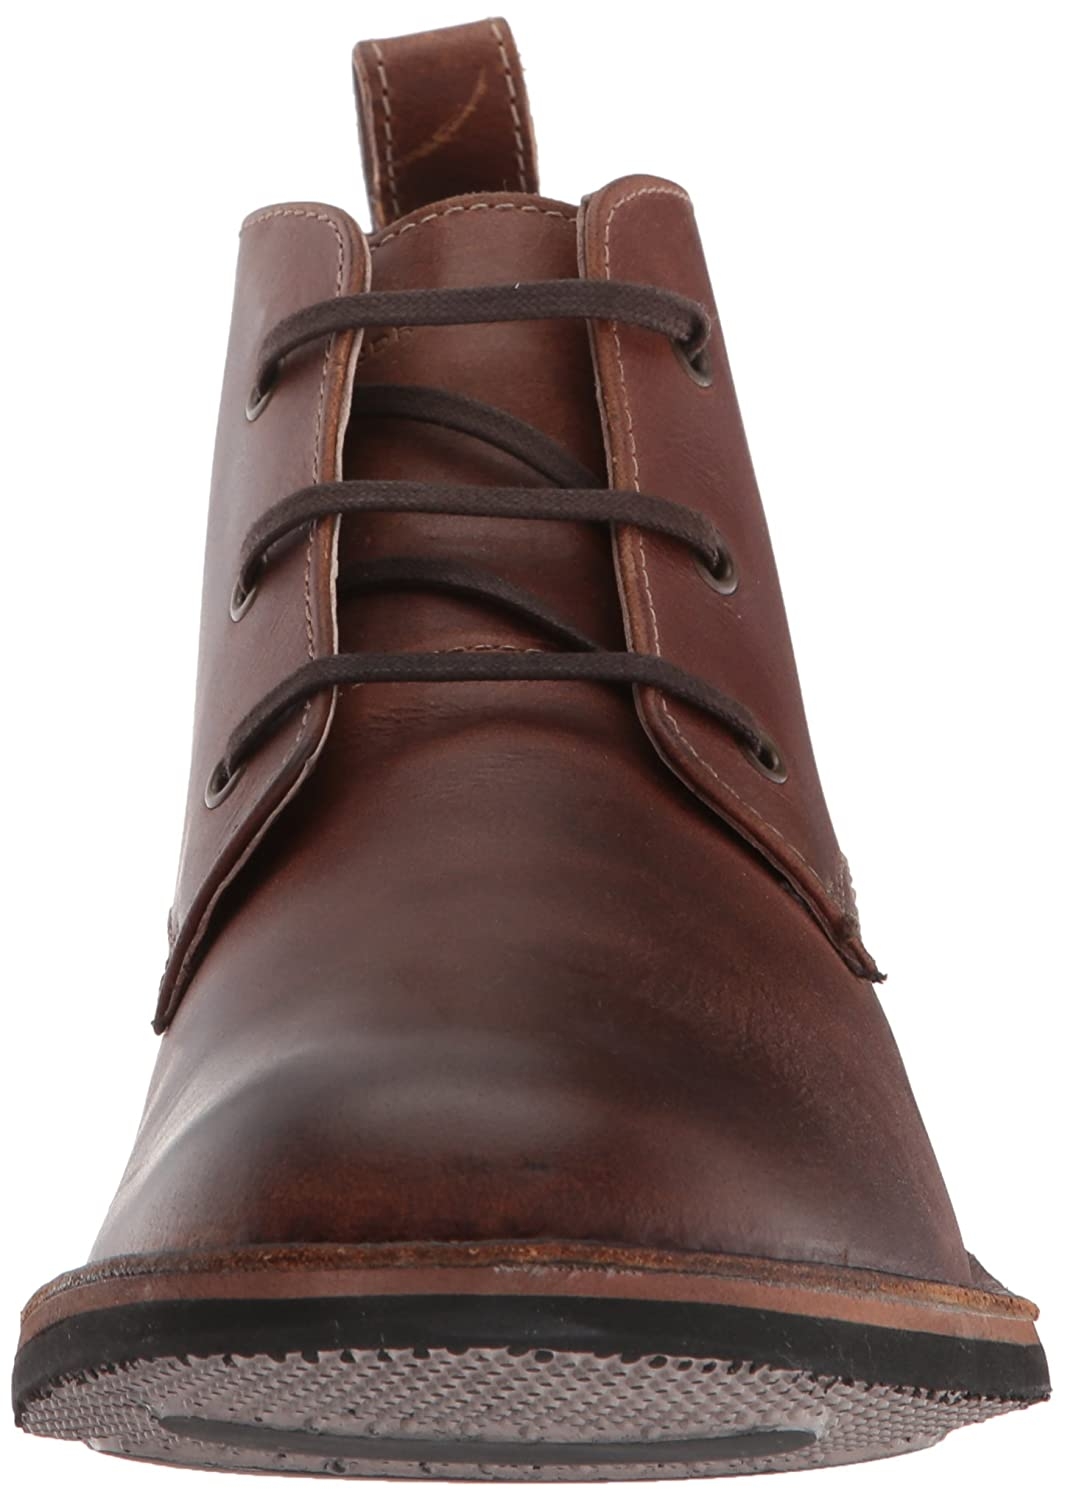 Andrew Marc Mens Dorchester Chukka Boot